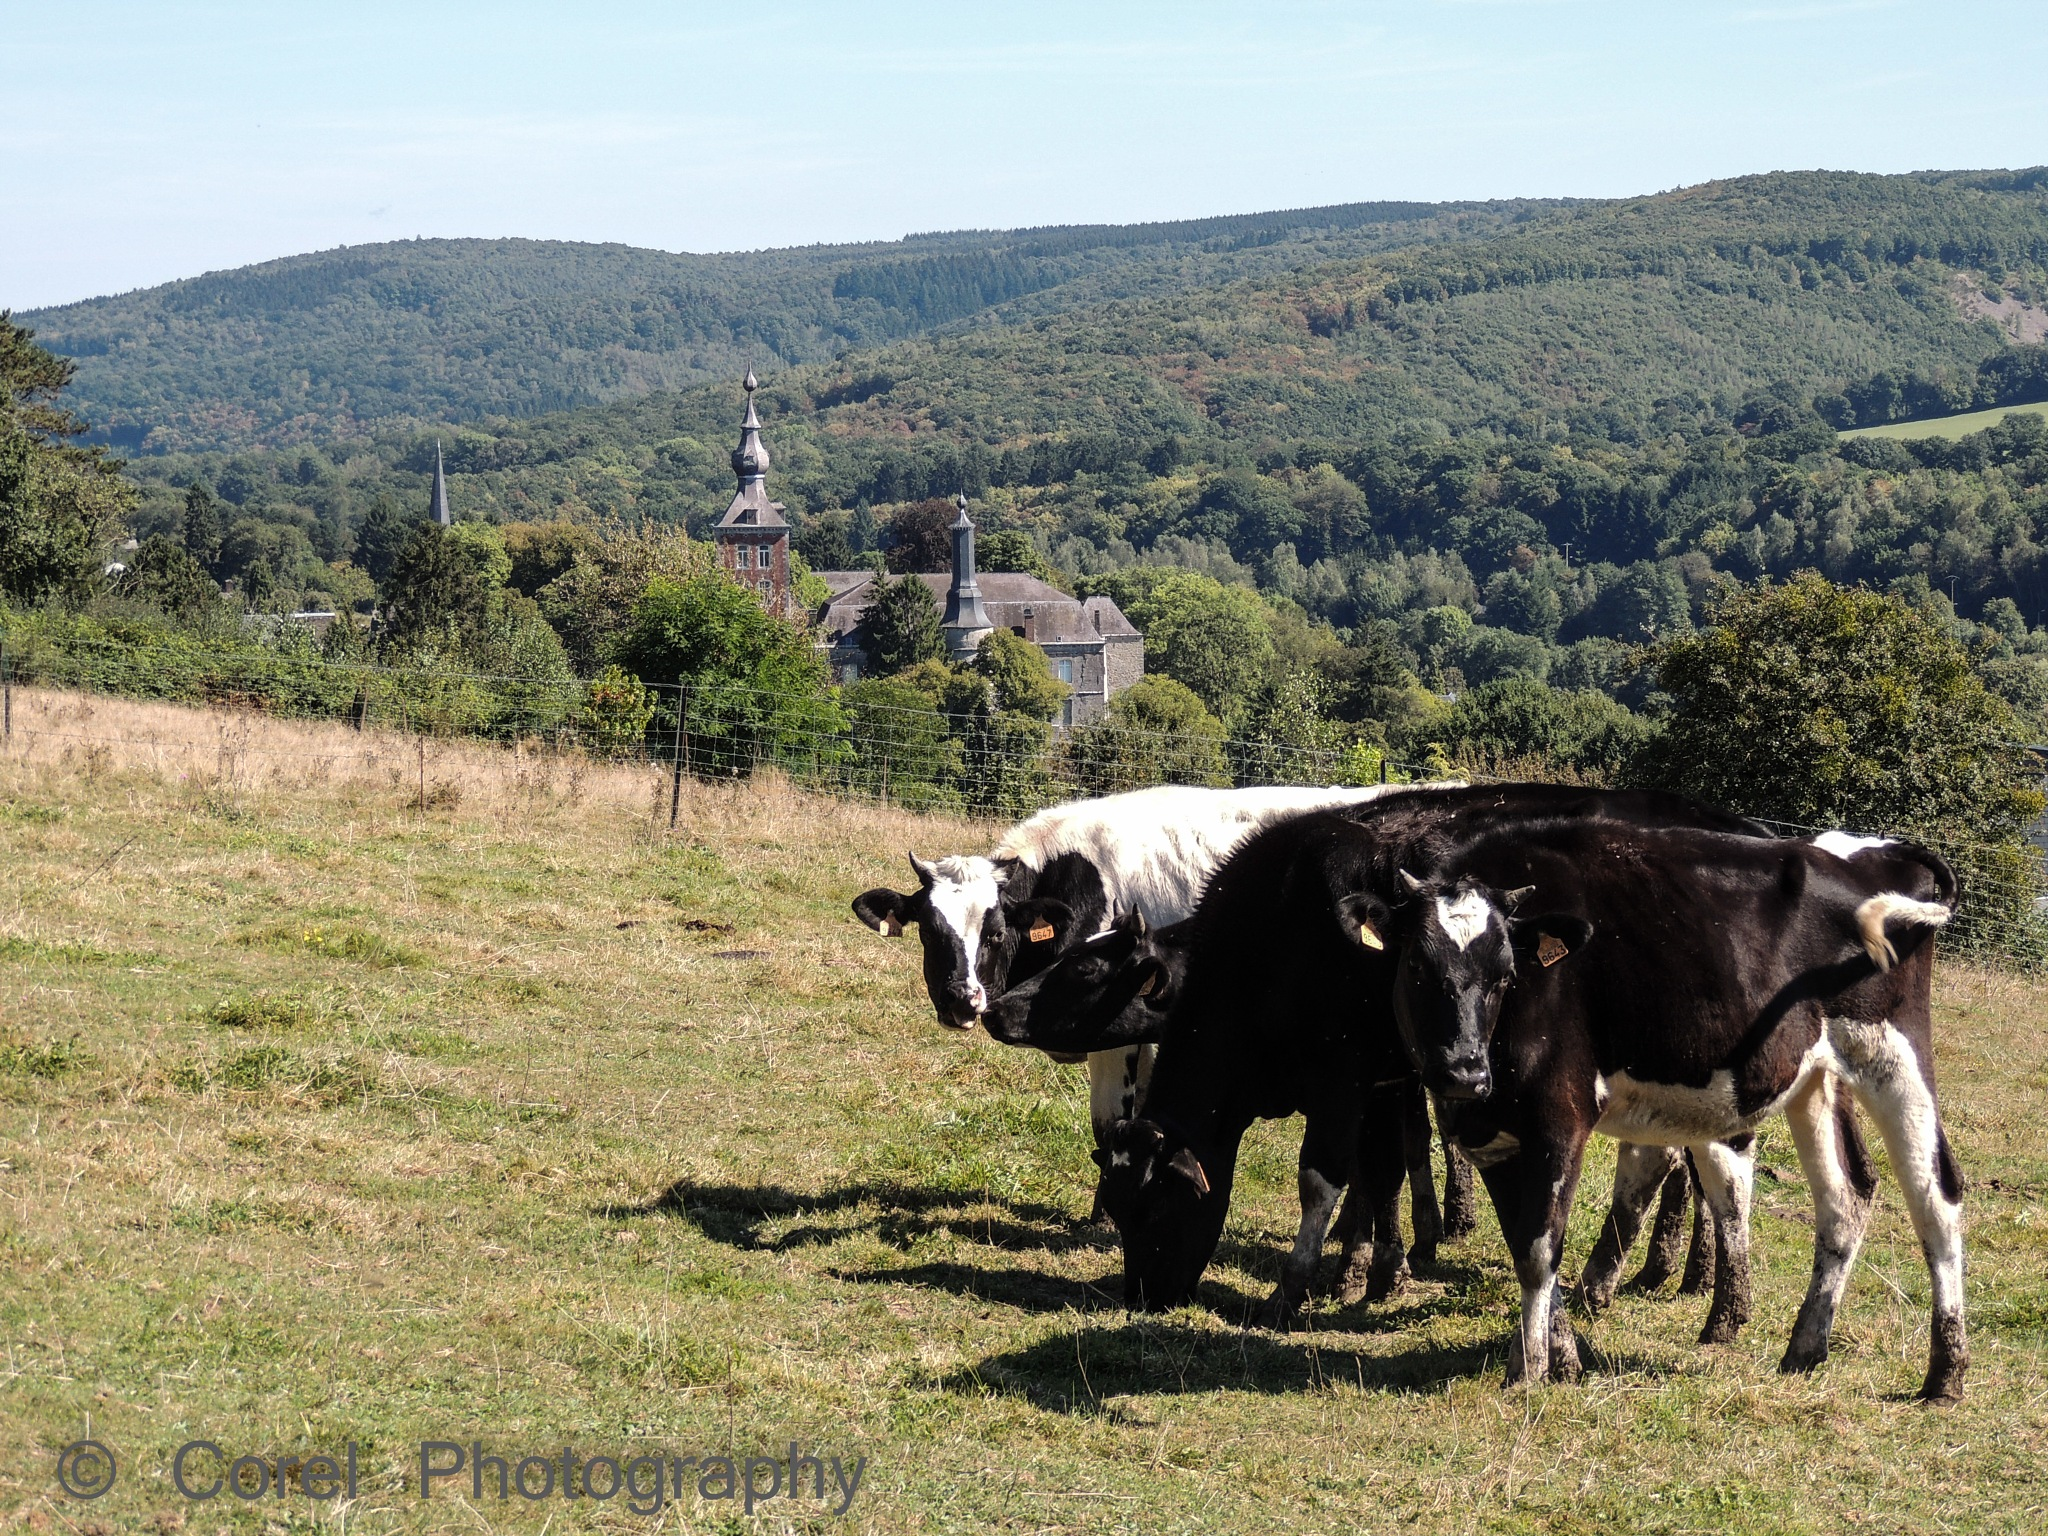 Cows by CorelPhotography